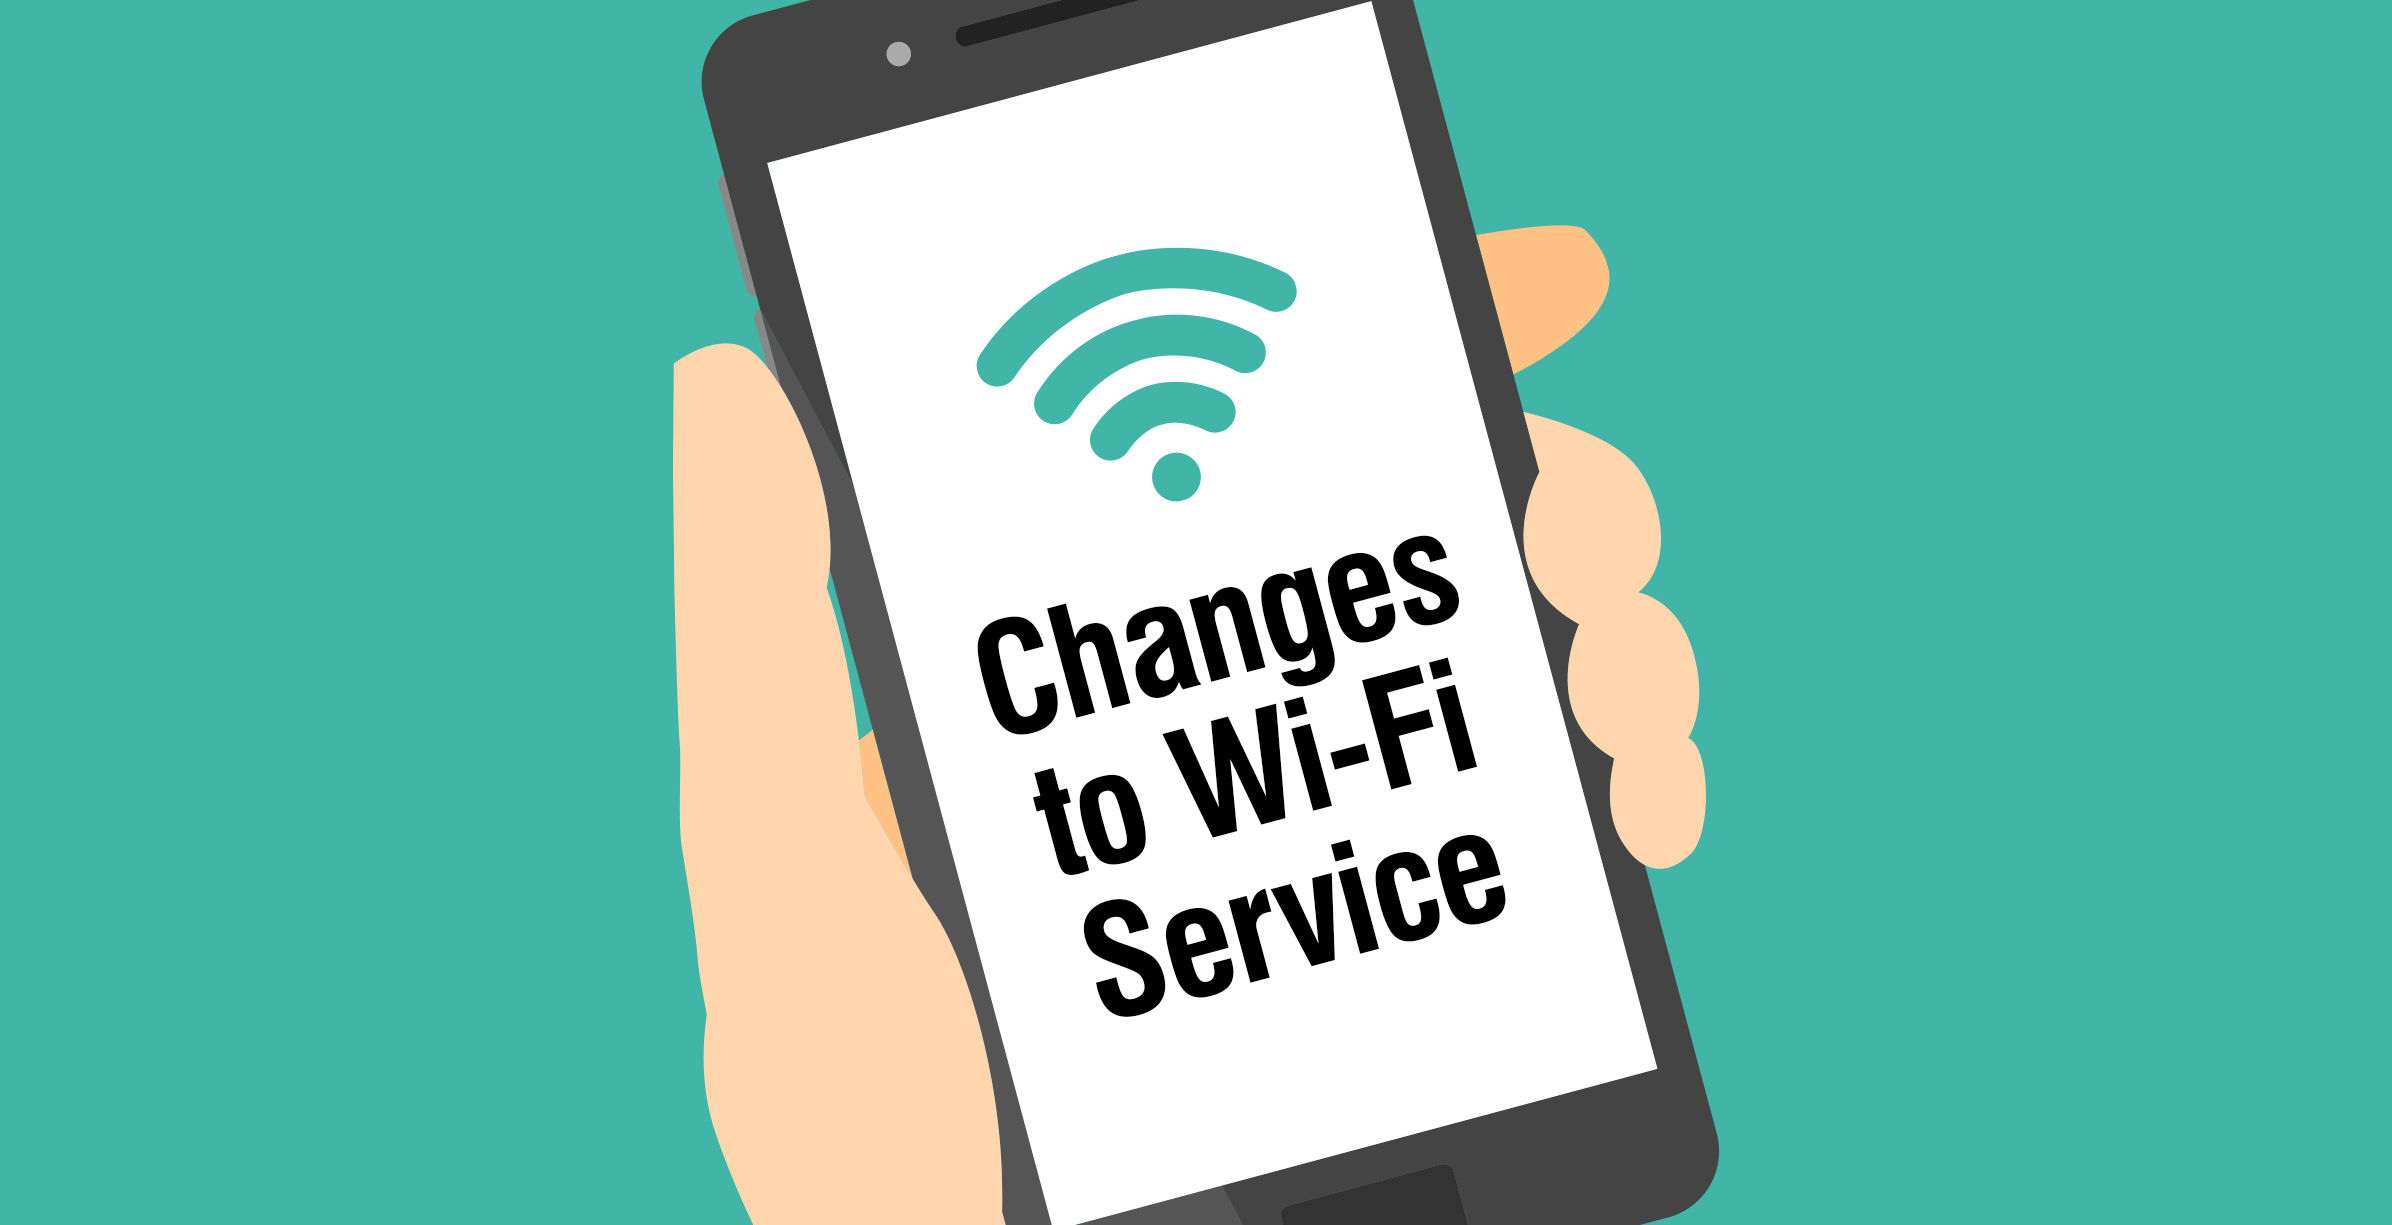 Changes to Wi-Fi Service